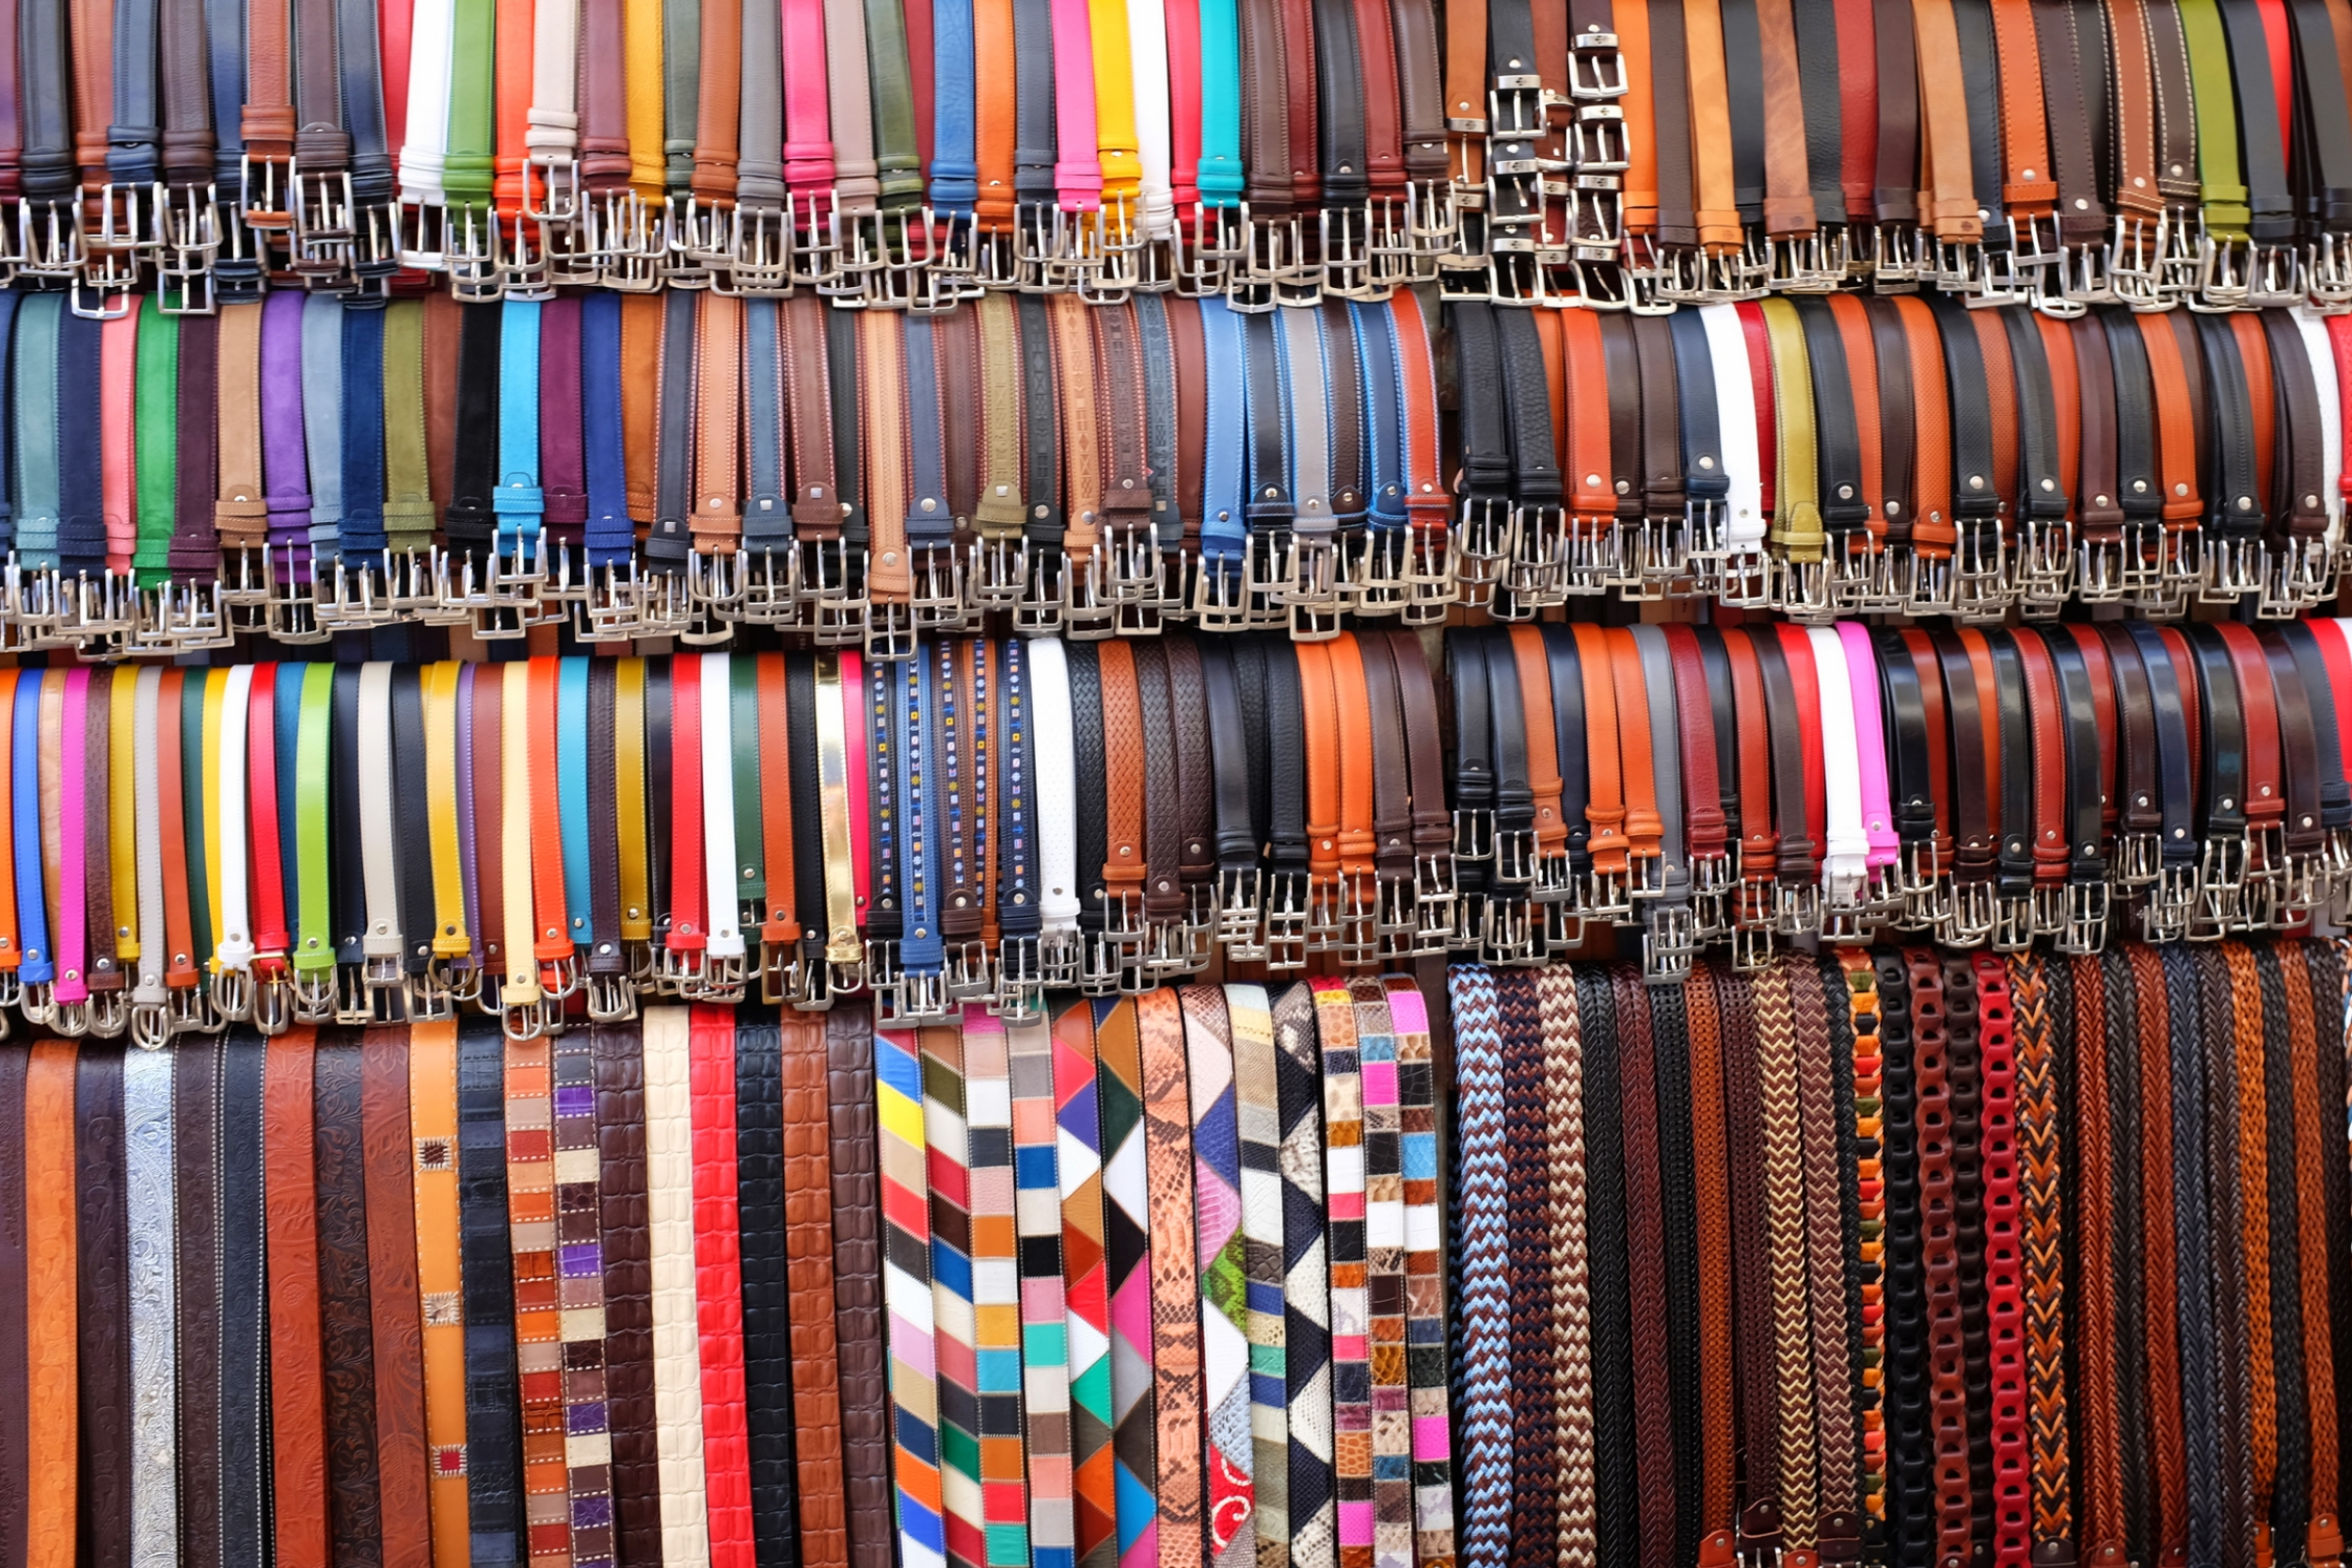 Florence Mercato Centrale leather belts